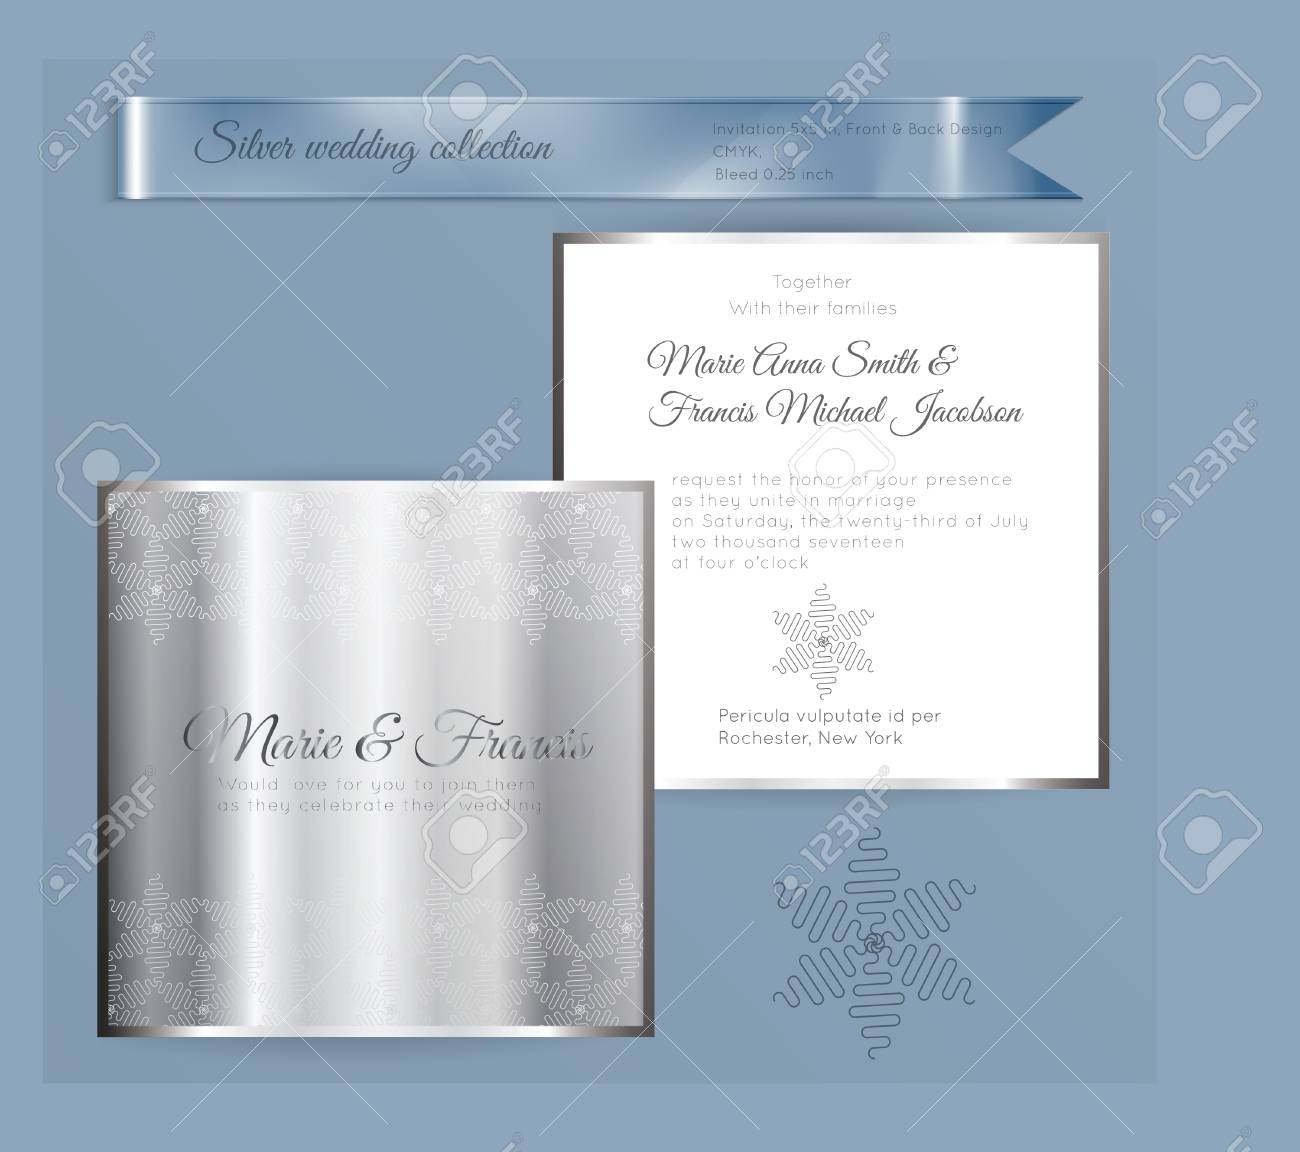 Luxury wedding invitation template with silver shiny ornament. Back and front square card layout with